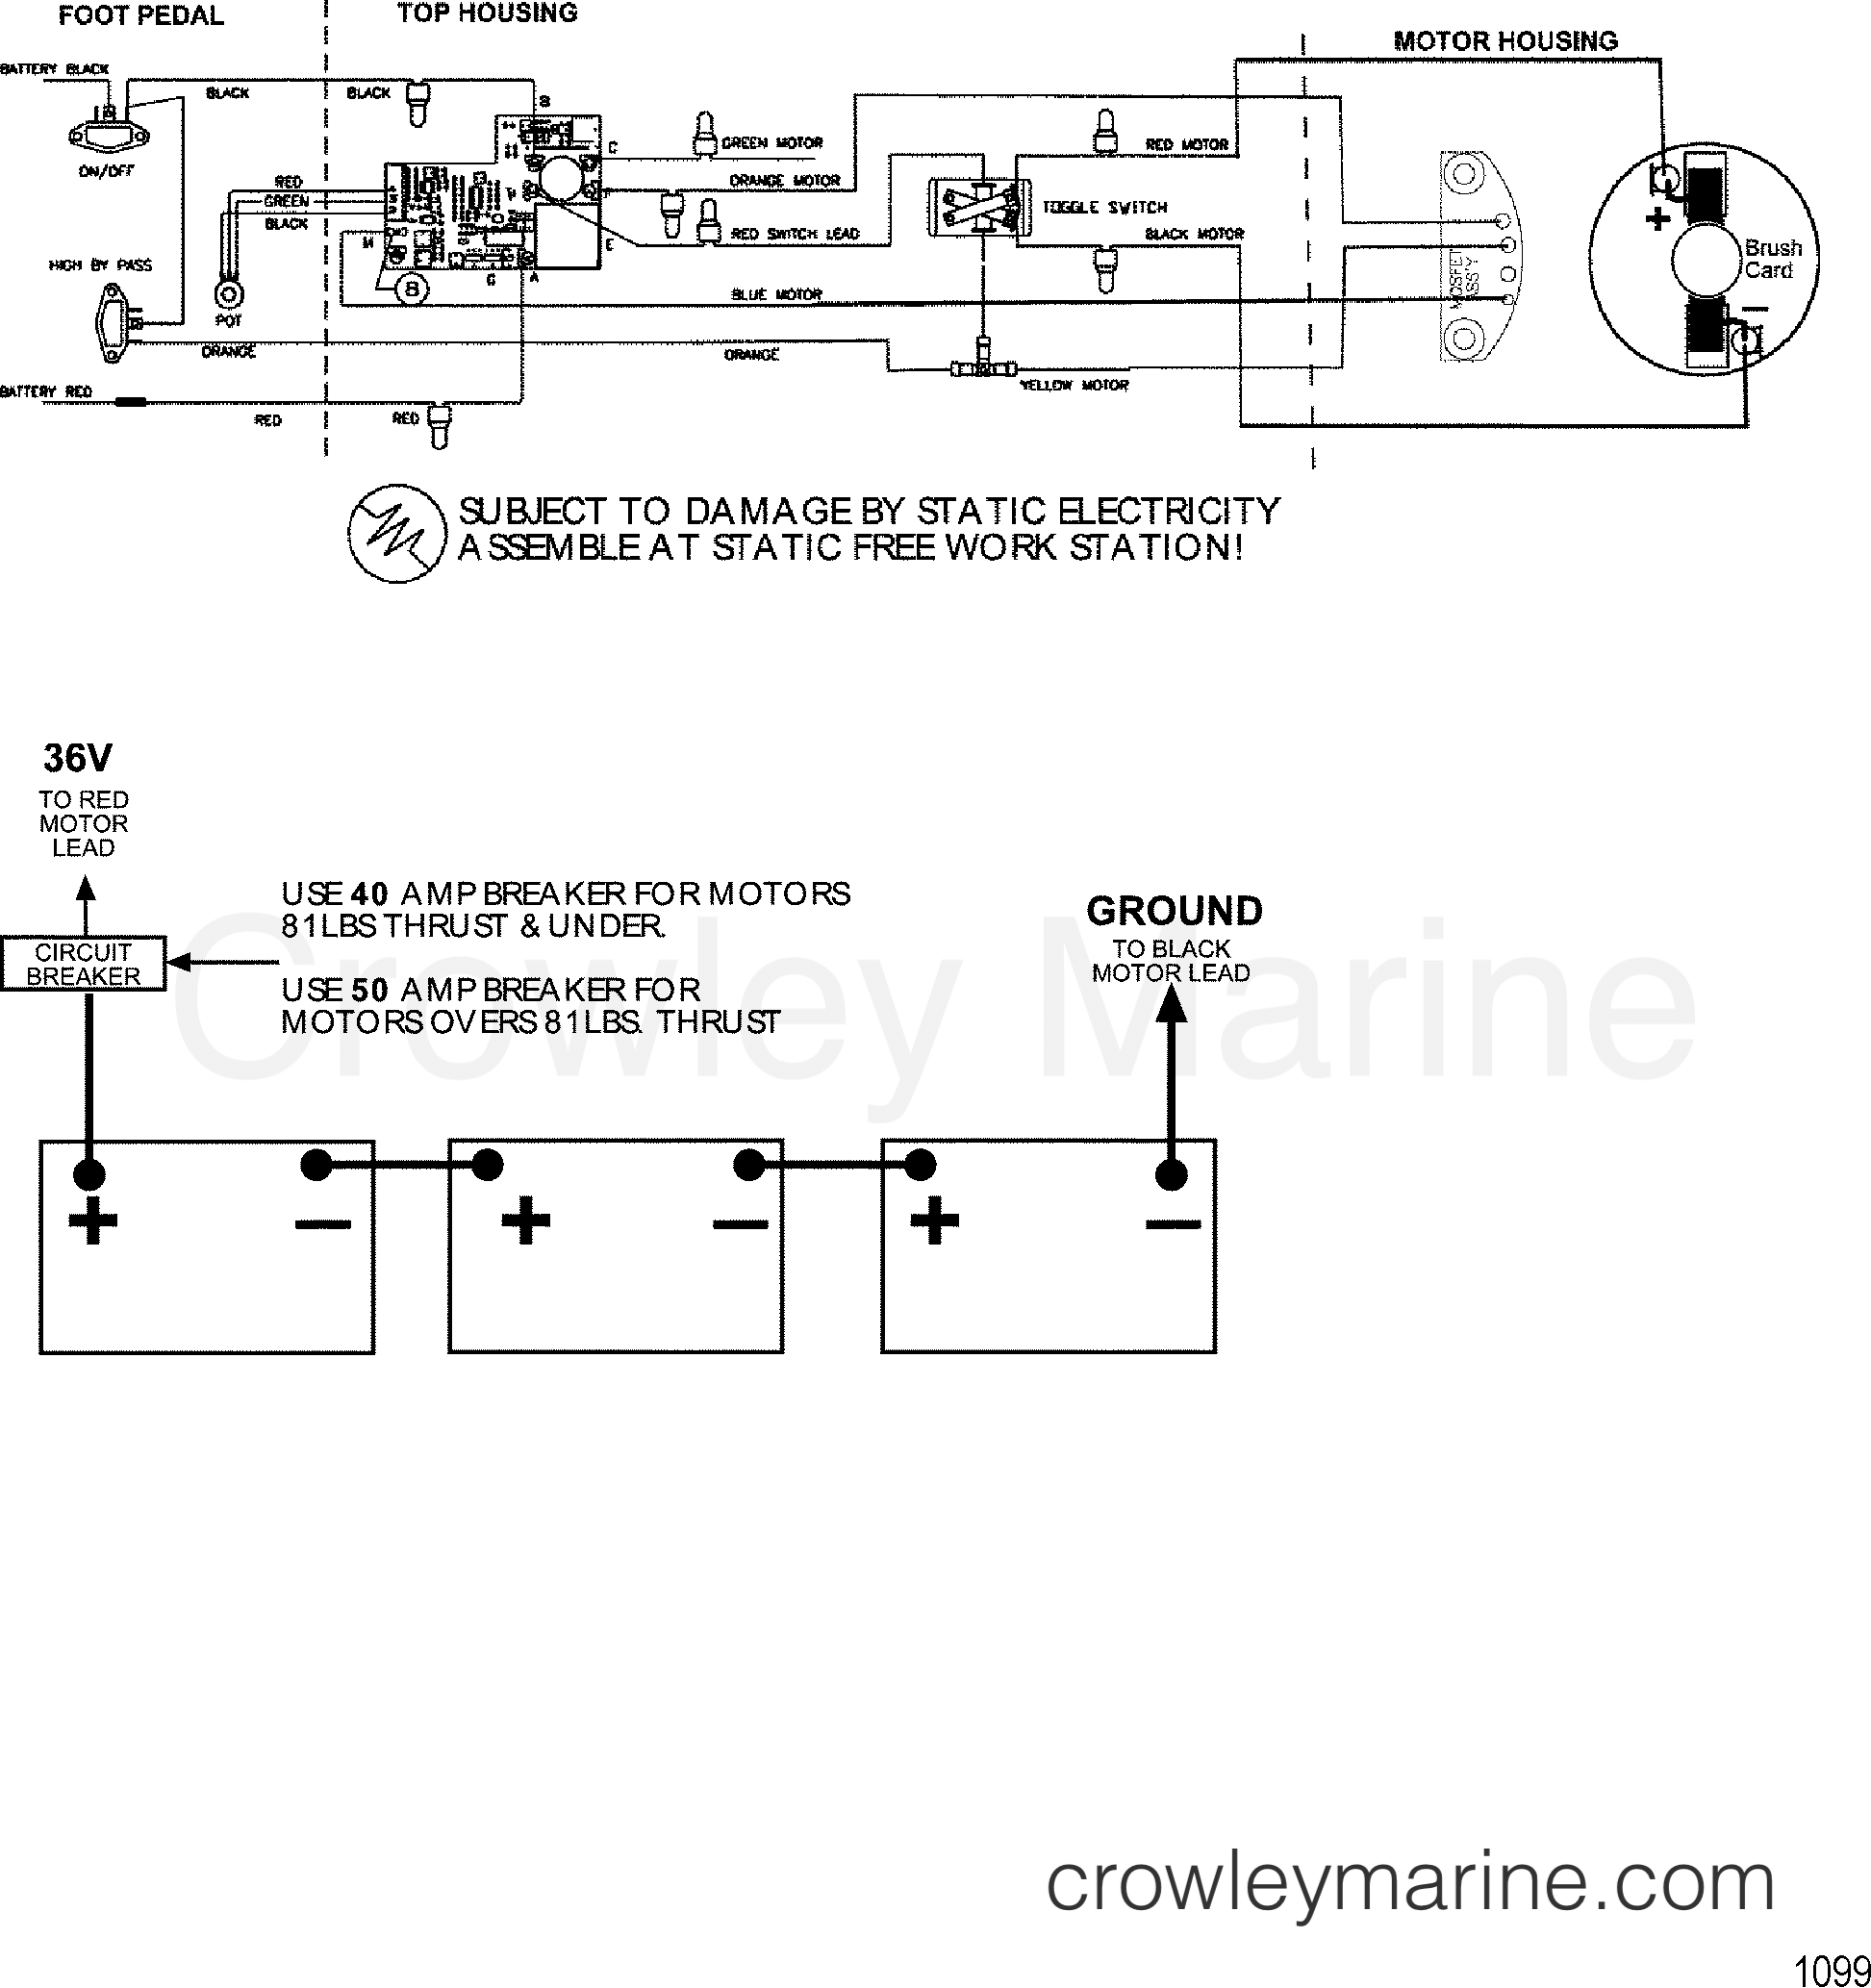 WIRE DIAGRAM(MODEL 6109V) (36 VOLT) - 1999 MotorGuide 12/24V ... on light switch wiring diagram, coleman air conditioning wiring diagram, 11.1v wiring diagram, 24 volt starter wiring diagram, 20v wiring diagram, 24 volt relay wiring diagram, bass tracker electrical wiring diagram, 72v wiring diagram, 70v speaker wiring diagram, minn kota 24 volt wiring diagram, 36v wiring diagram, 220vac wiring diagram, 120vac wiring diagram, 24 volt alternator wiring diagram, 12 volt boat wiring diagram, carrier air handler wiring diagram, 38v wiring diagram, 125v wiring diagram, 30a wiring diagram, 24 volt thermostat wiring diagram,